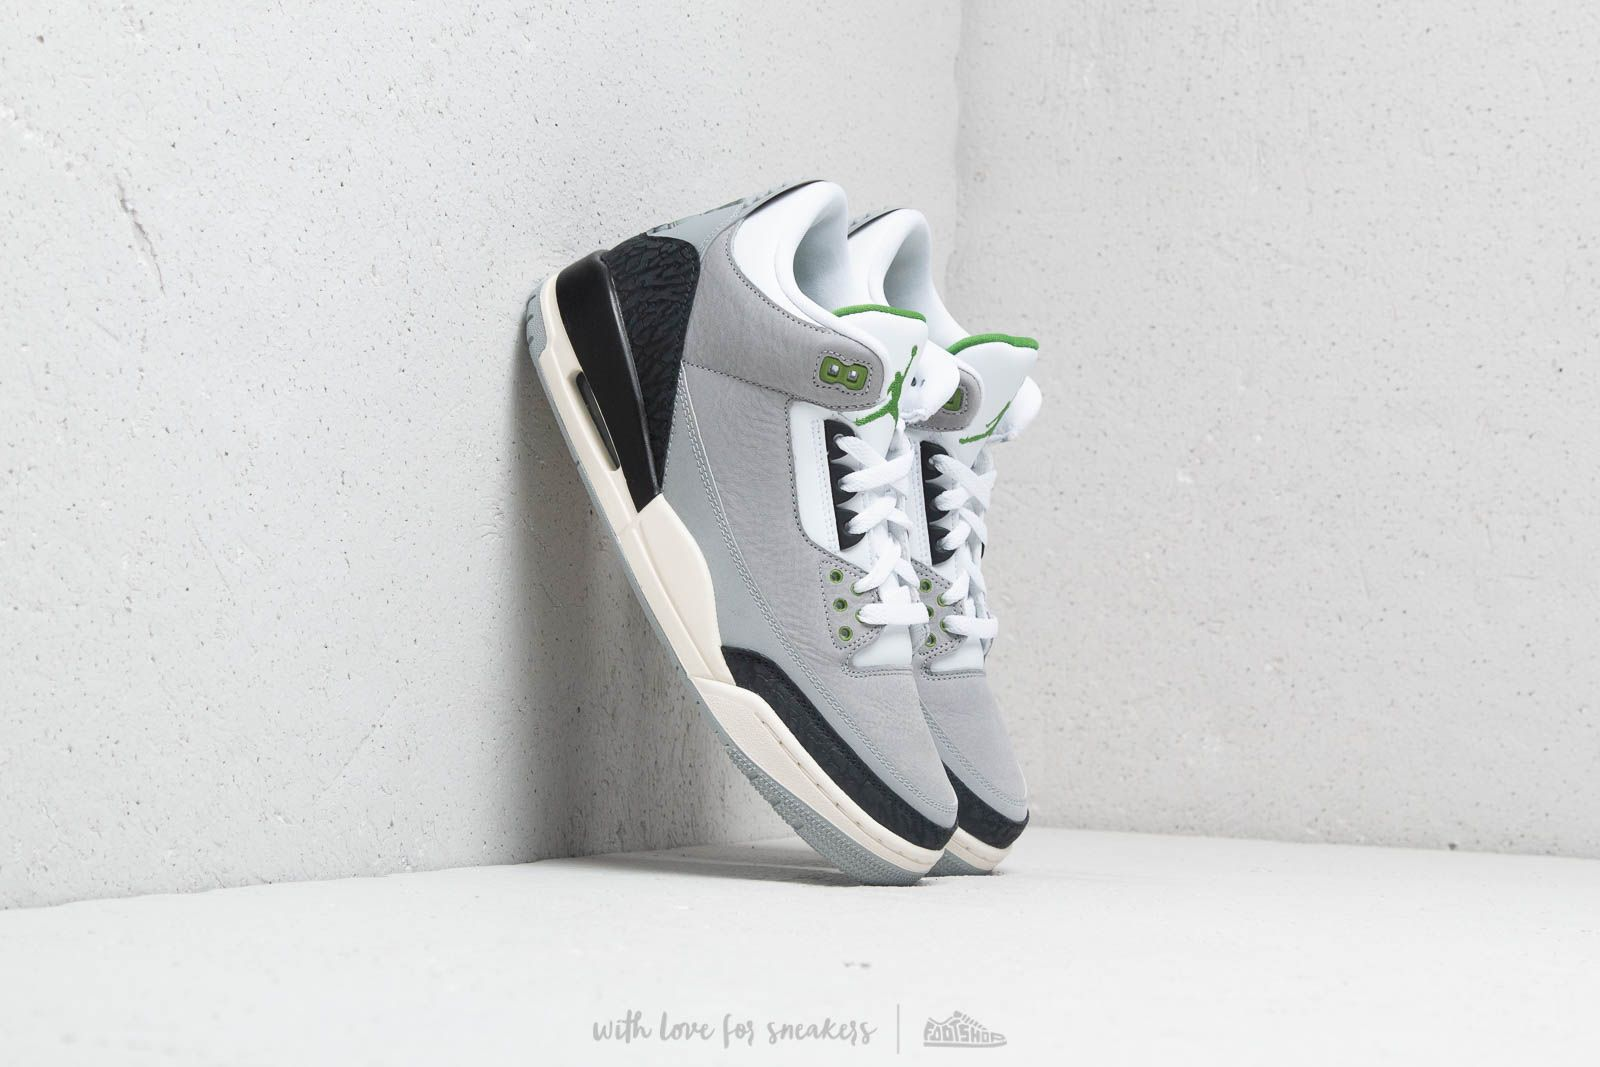 Air Jordan 3 Retro Lt Smoke Grey/ Chlorophyll at a great price $224 buy at Footshop